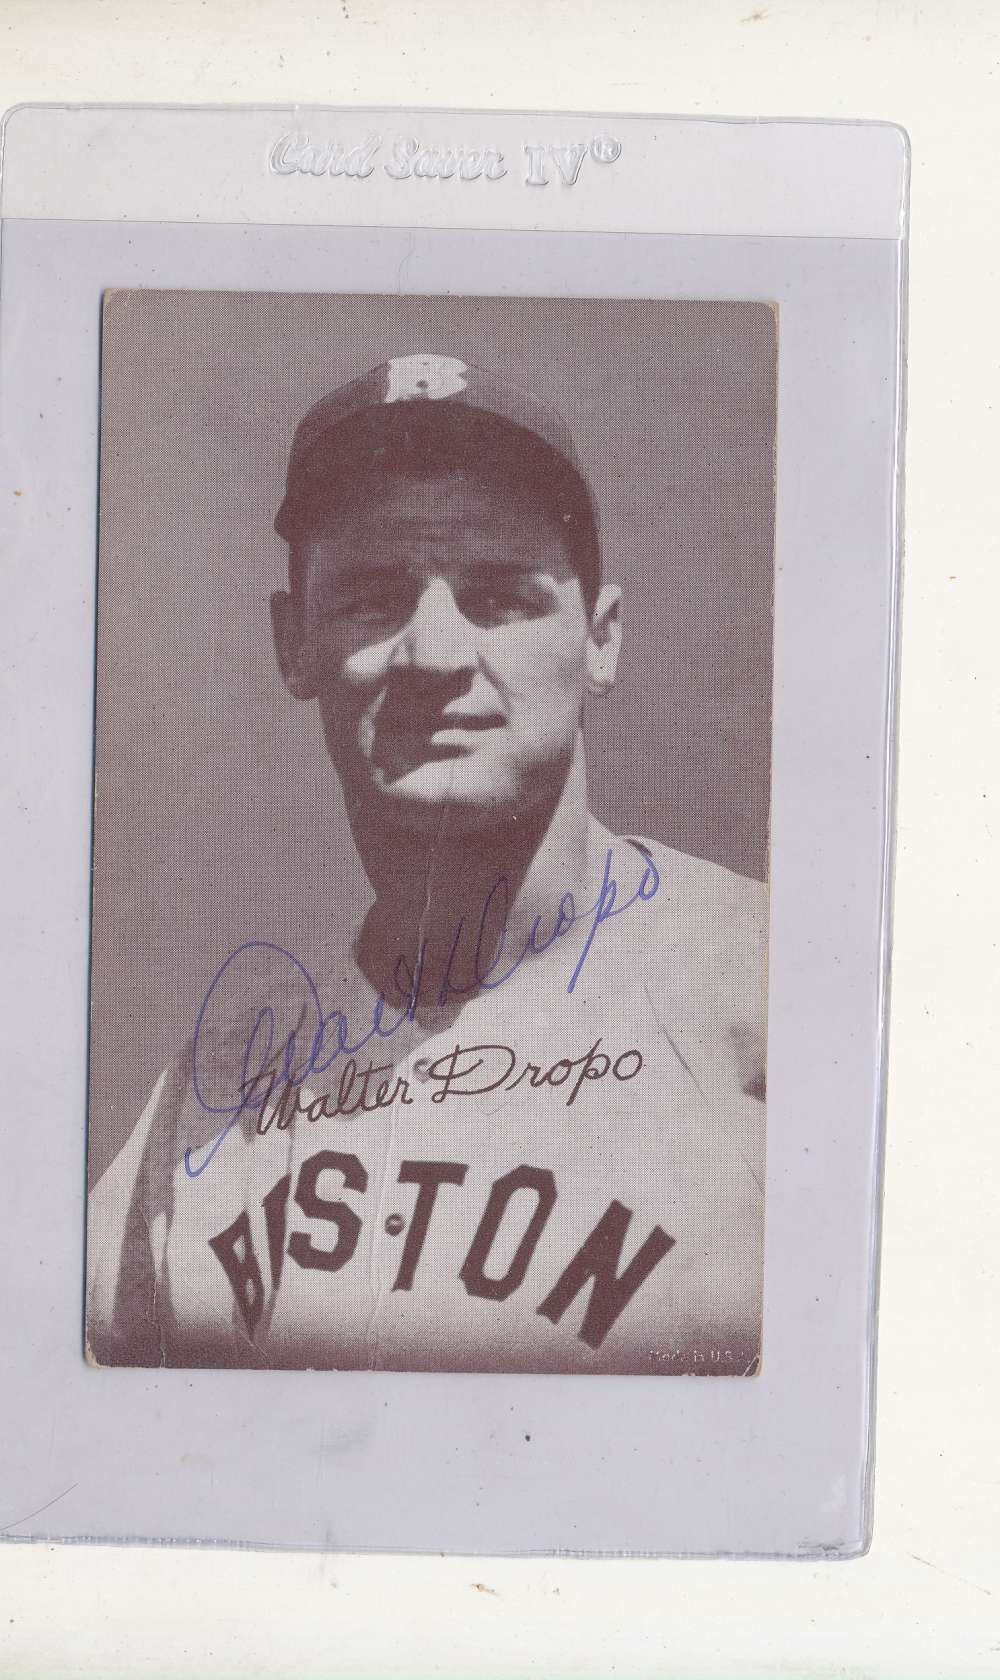 Walter Dropo Boston Red Sox Signed 1946-1966 exhibit card